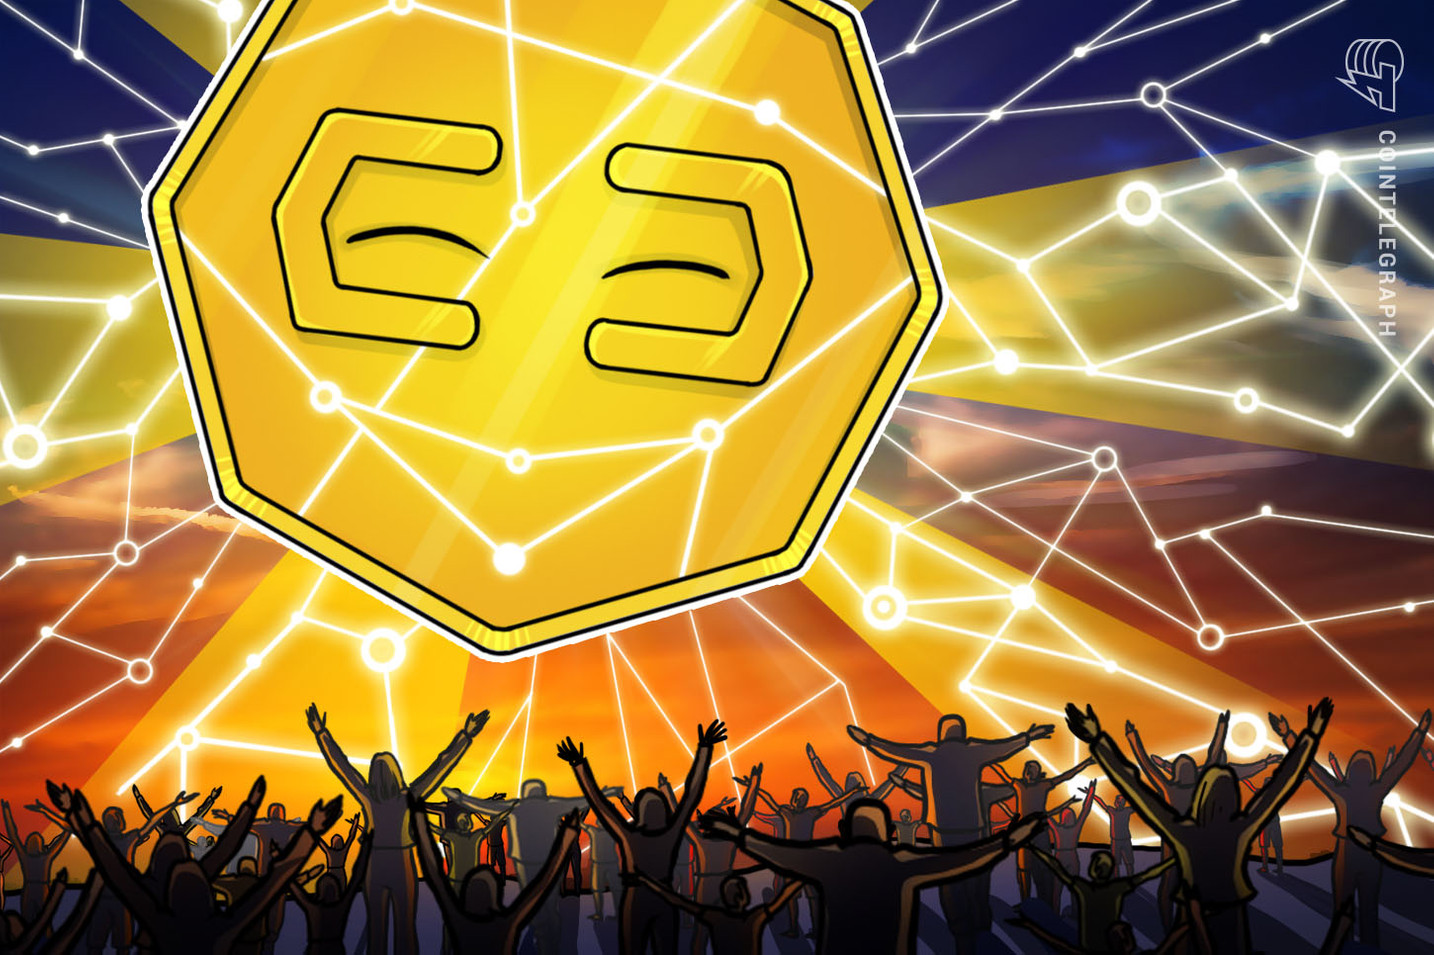 Asia Pacific Conservative Union Launches Blockchain Ecosystem to Fight Authoritarianism